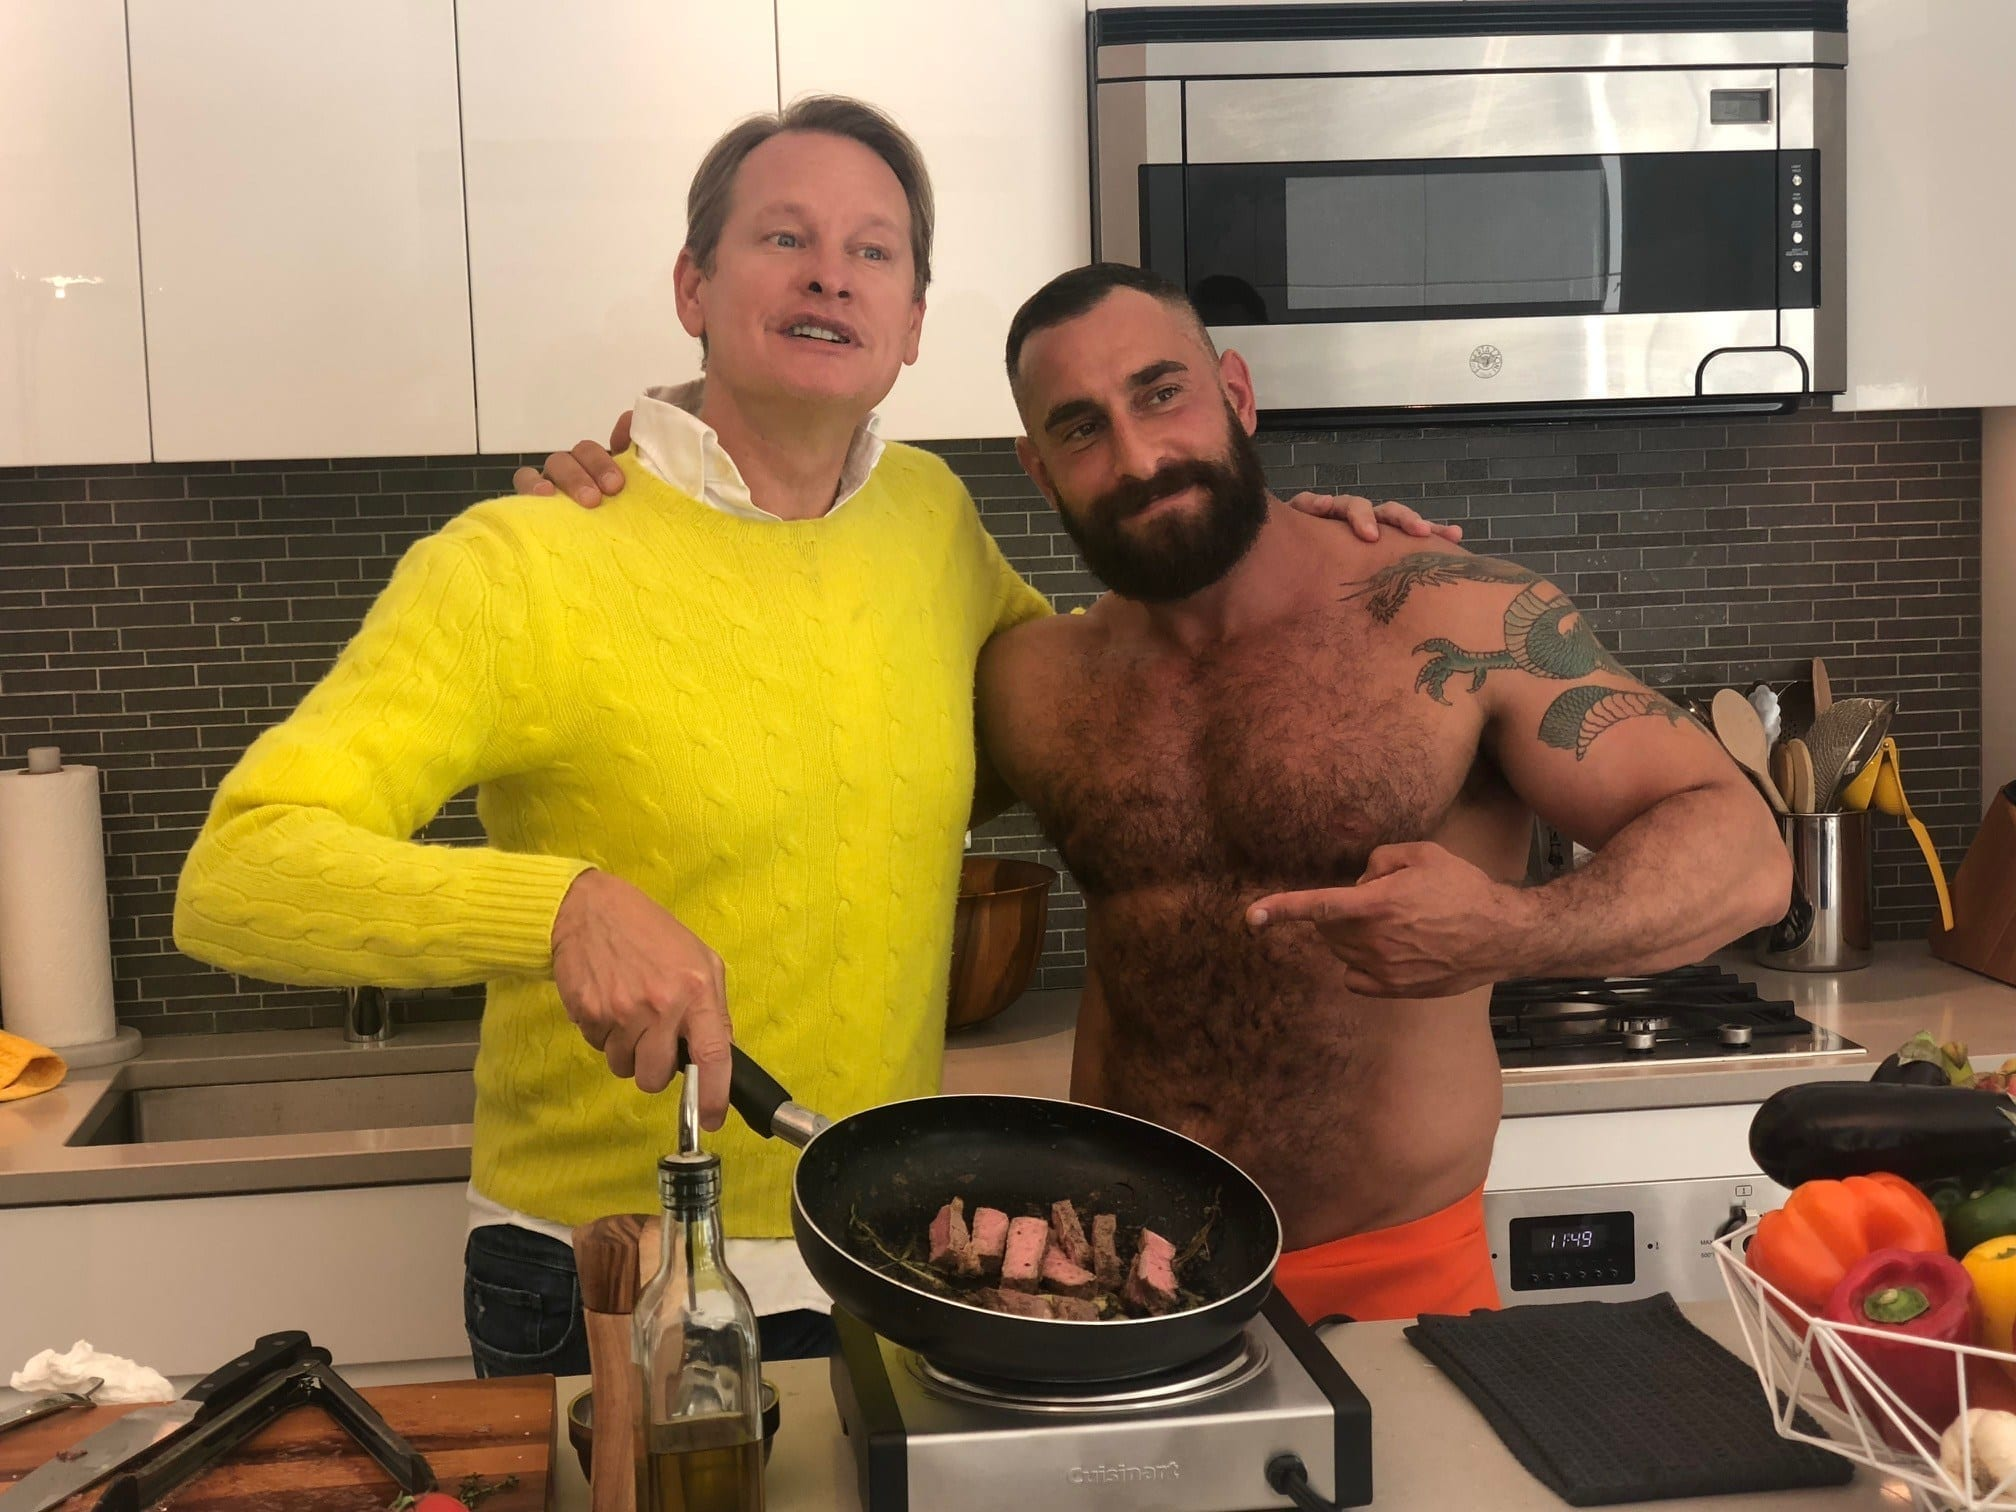 TRAILER: The Bear-Naked Chef is taking his cooking show on